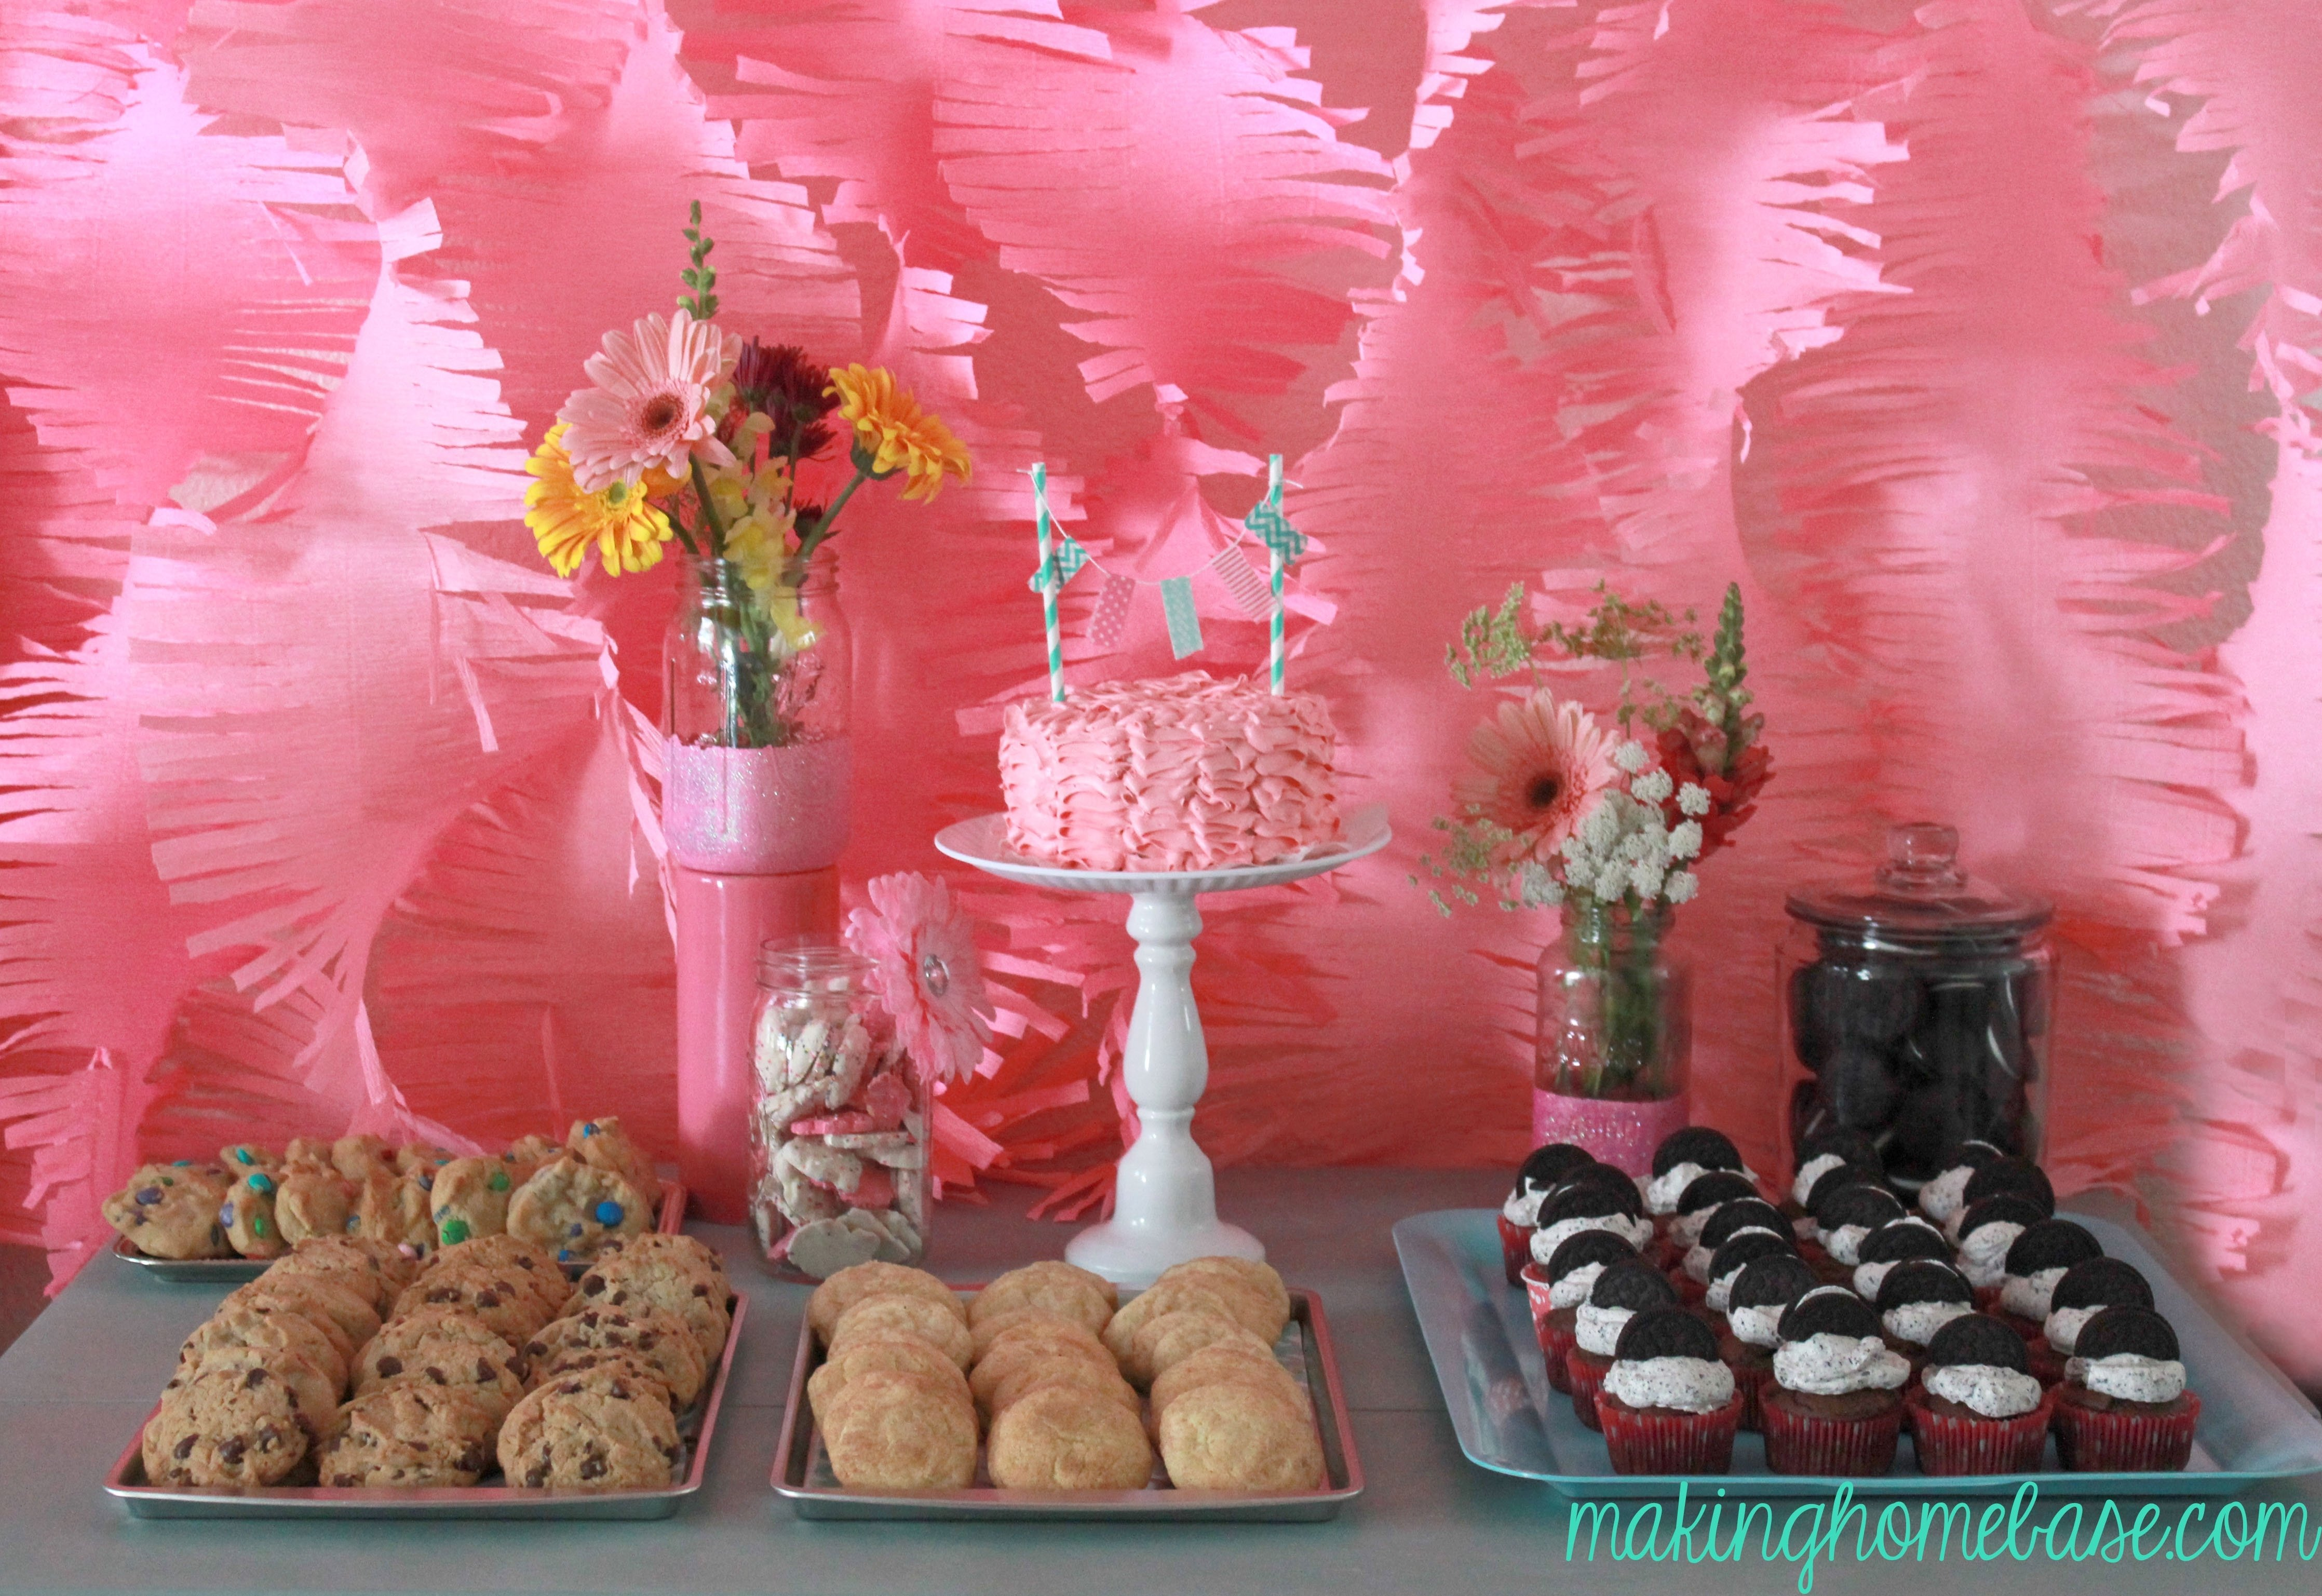 10 Gorgeous 5 Year Old Girl Birthday Party Ideas and cookies birthday party ideas 2020